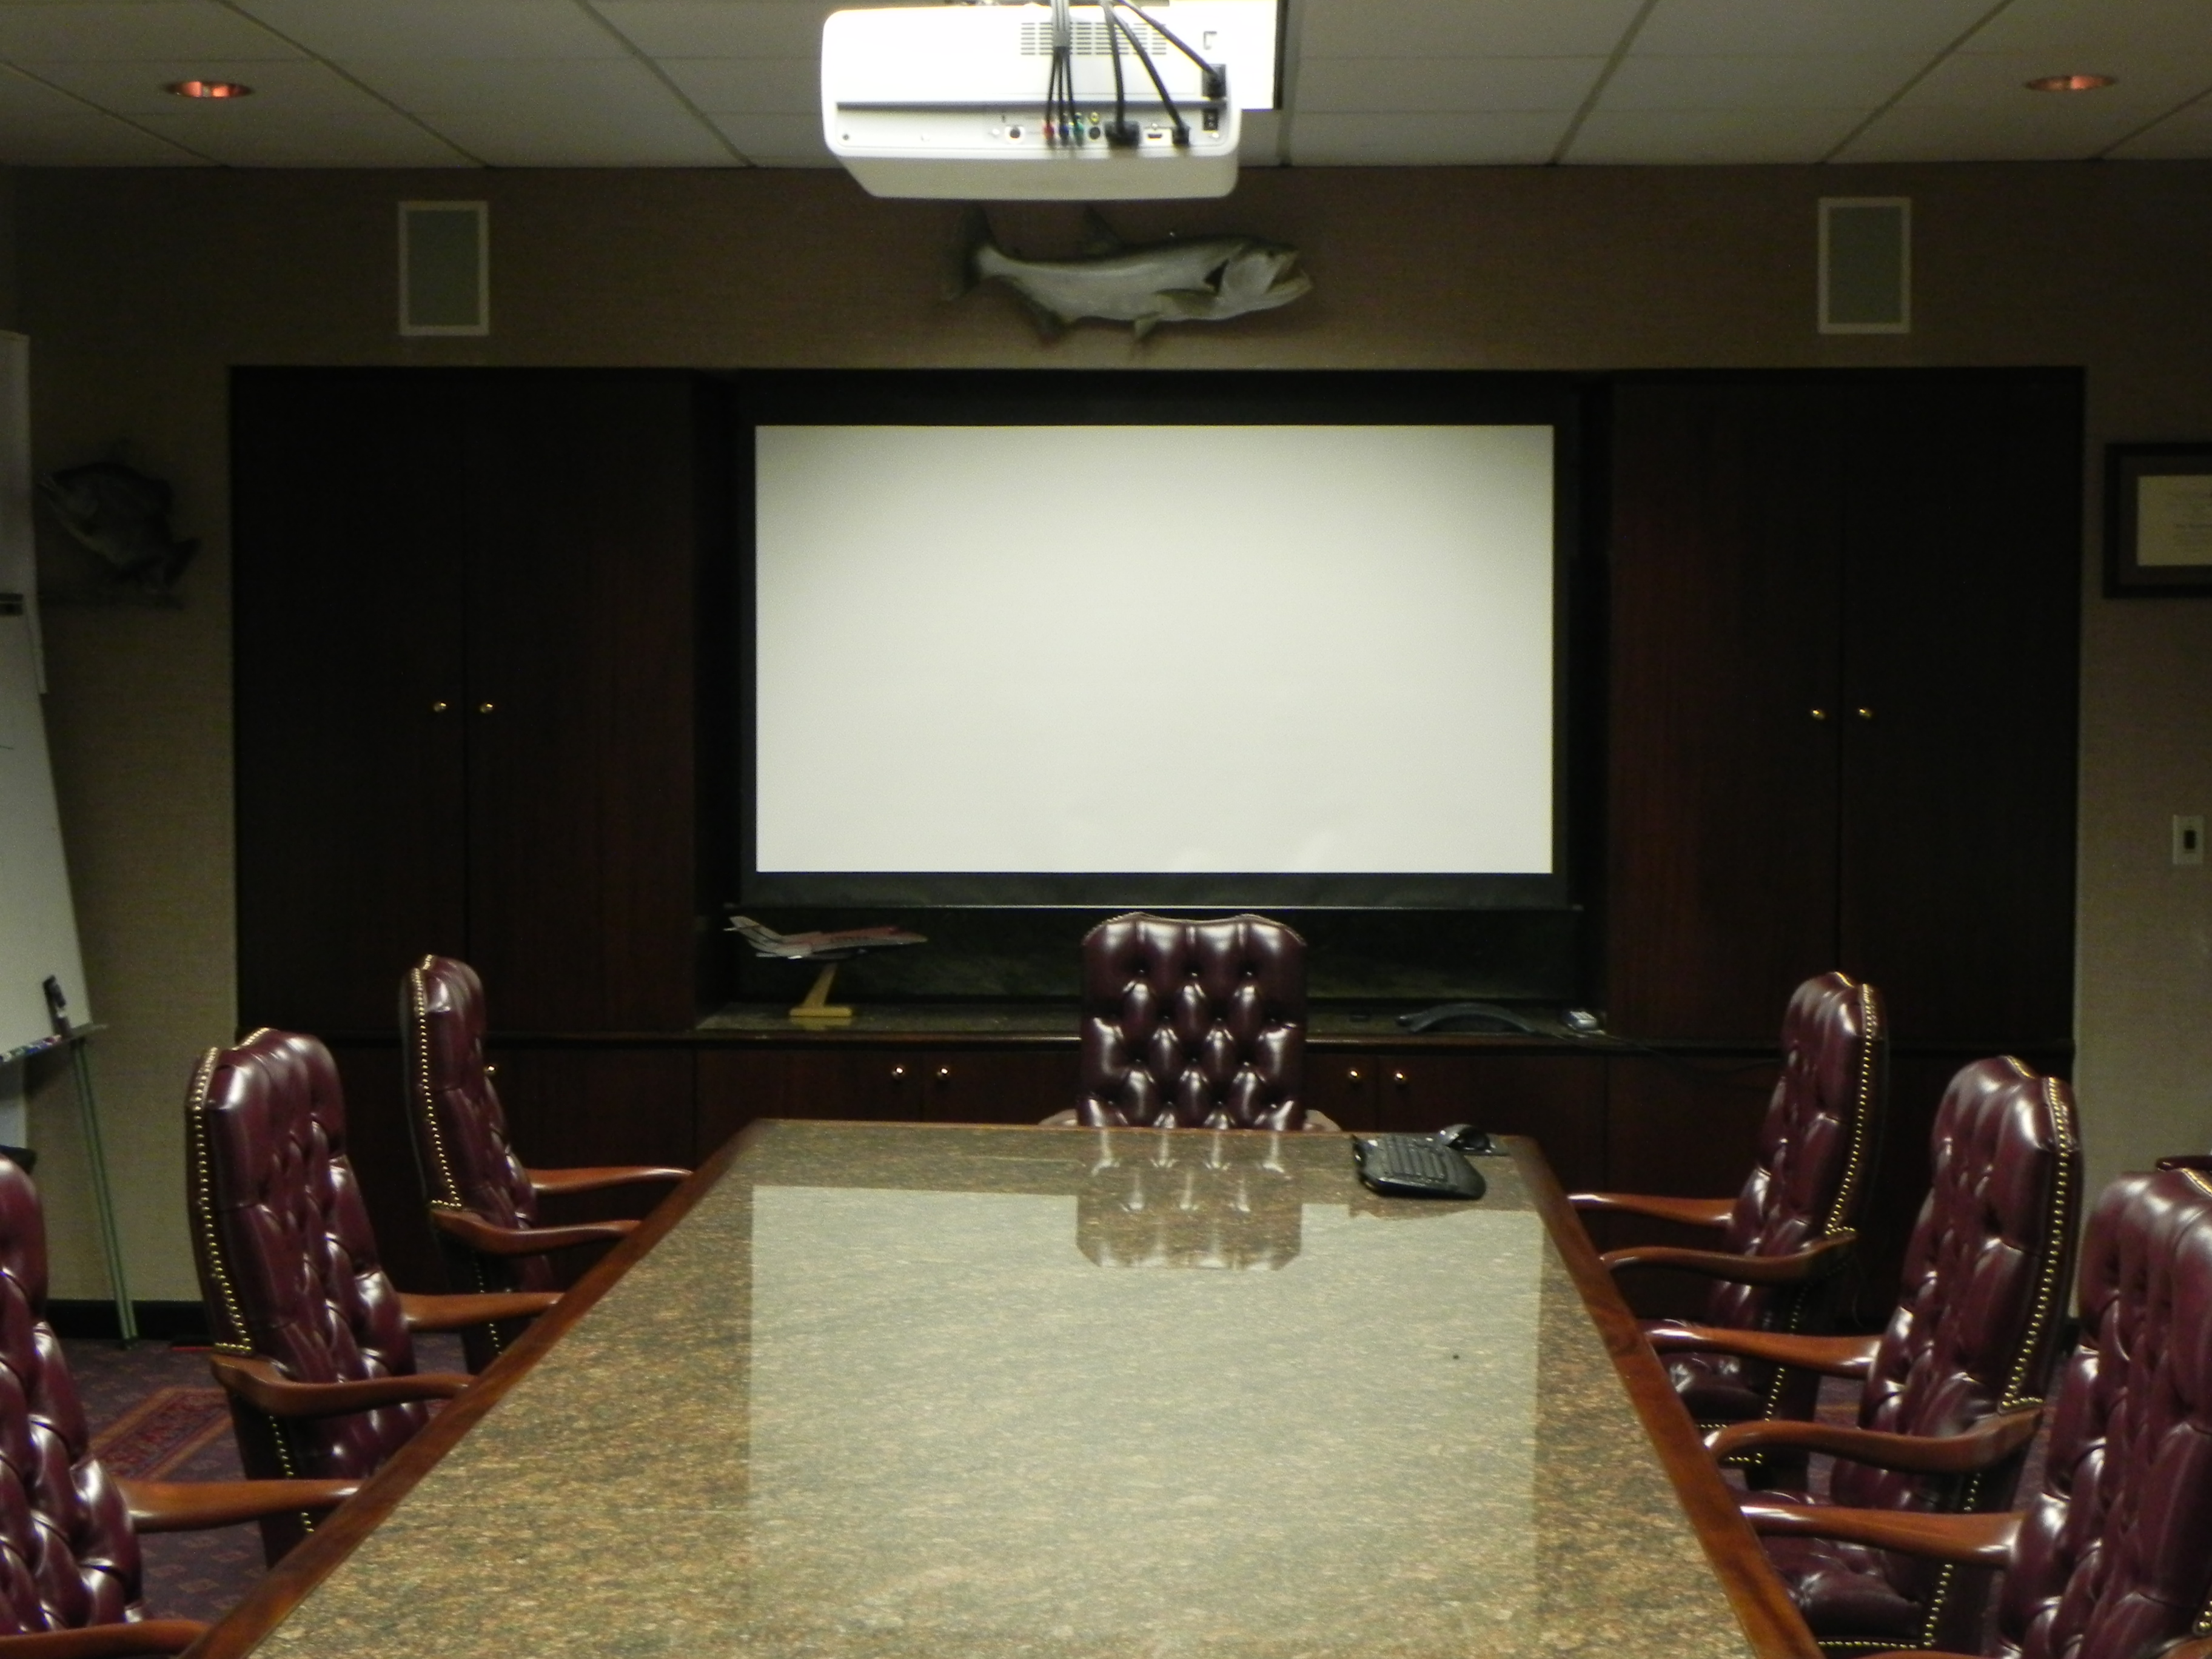 Media Room Design & Installation New Braunfels, TX | Home Media